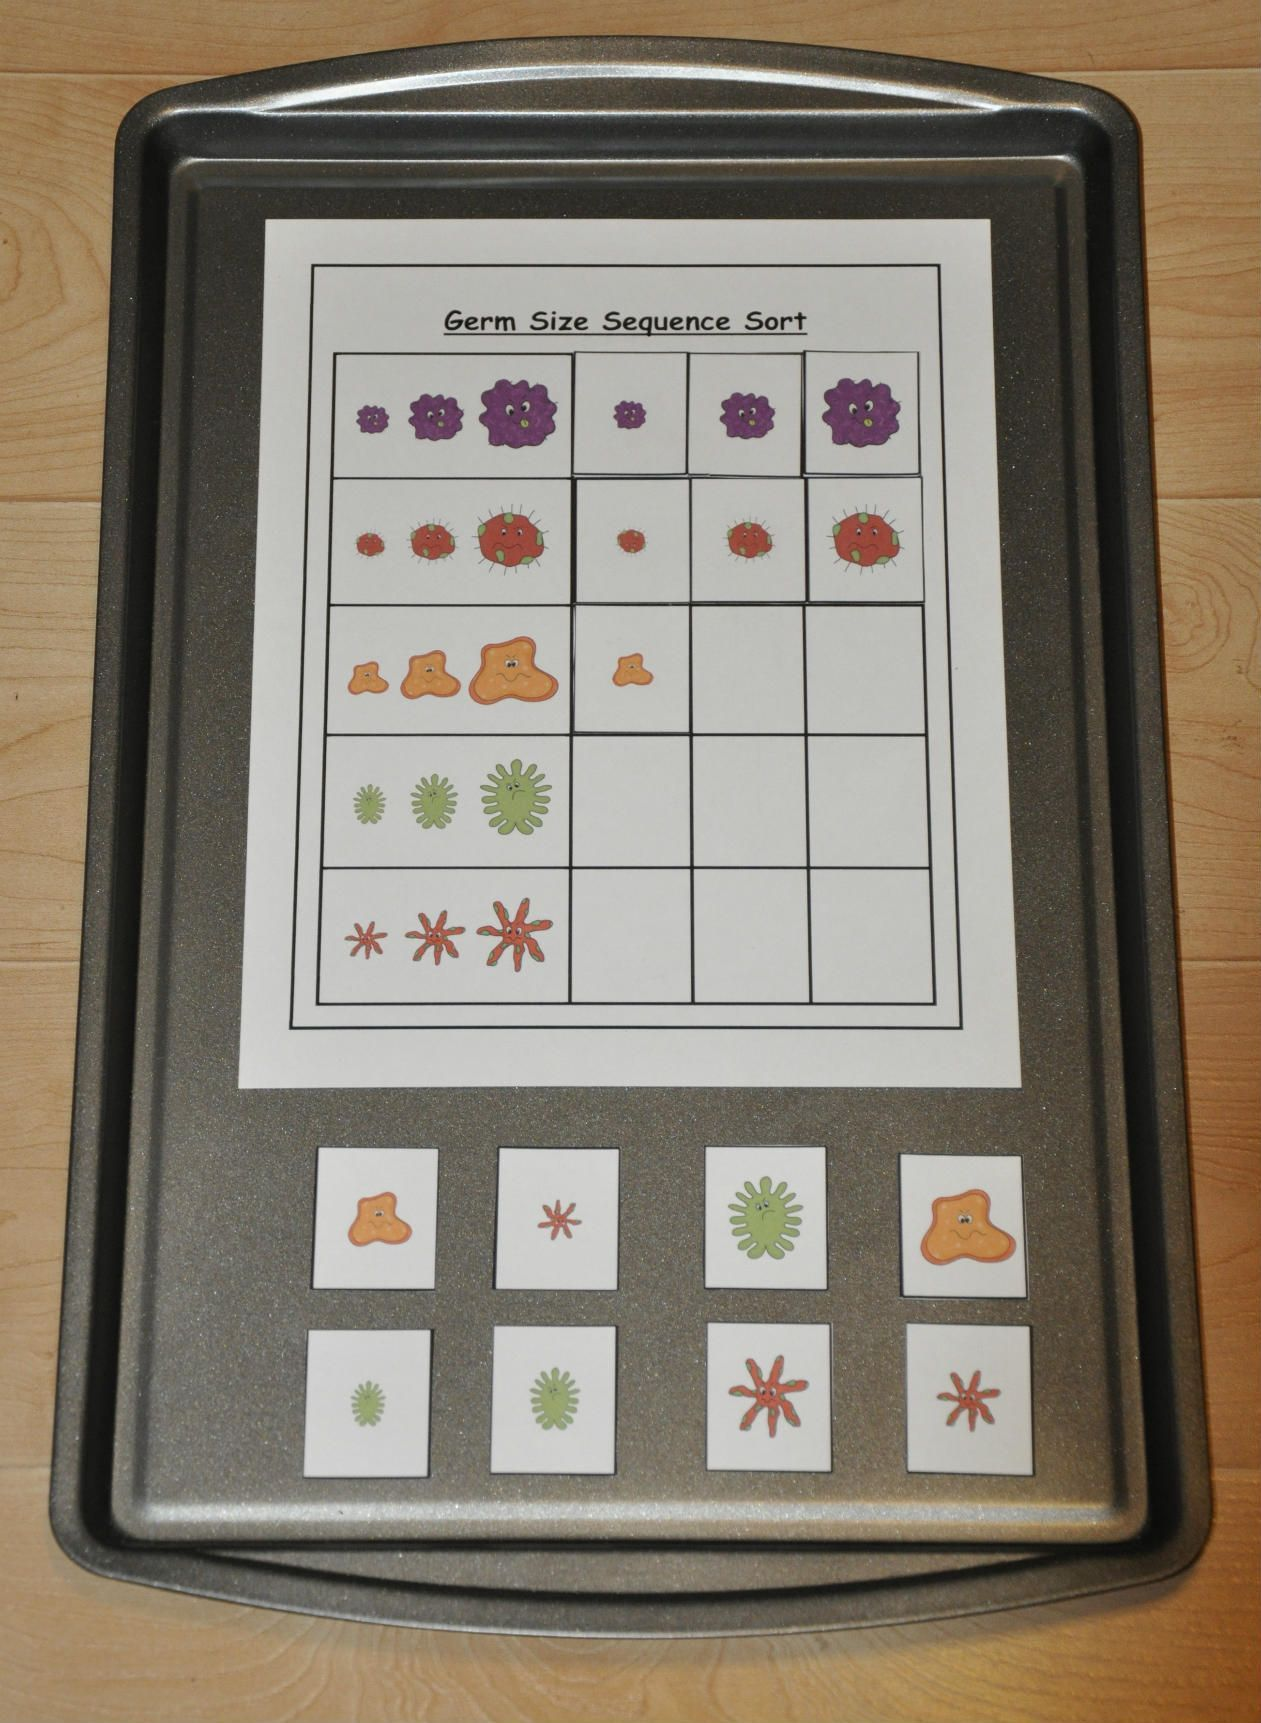 More Germs Sequence Germs By Size Cookie Sheet Activity